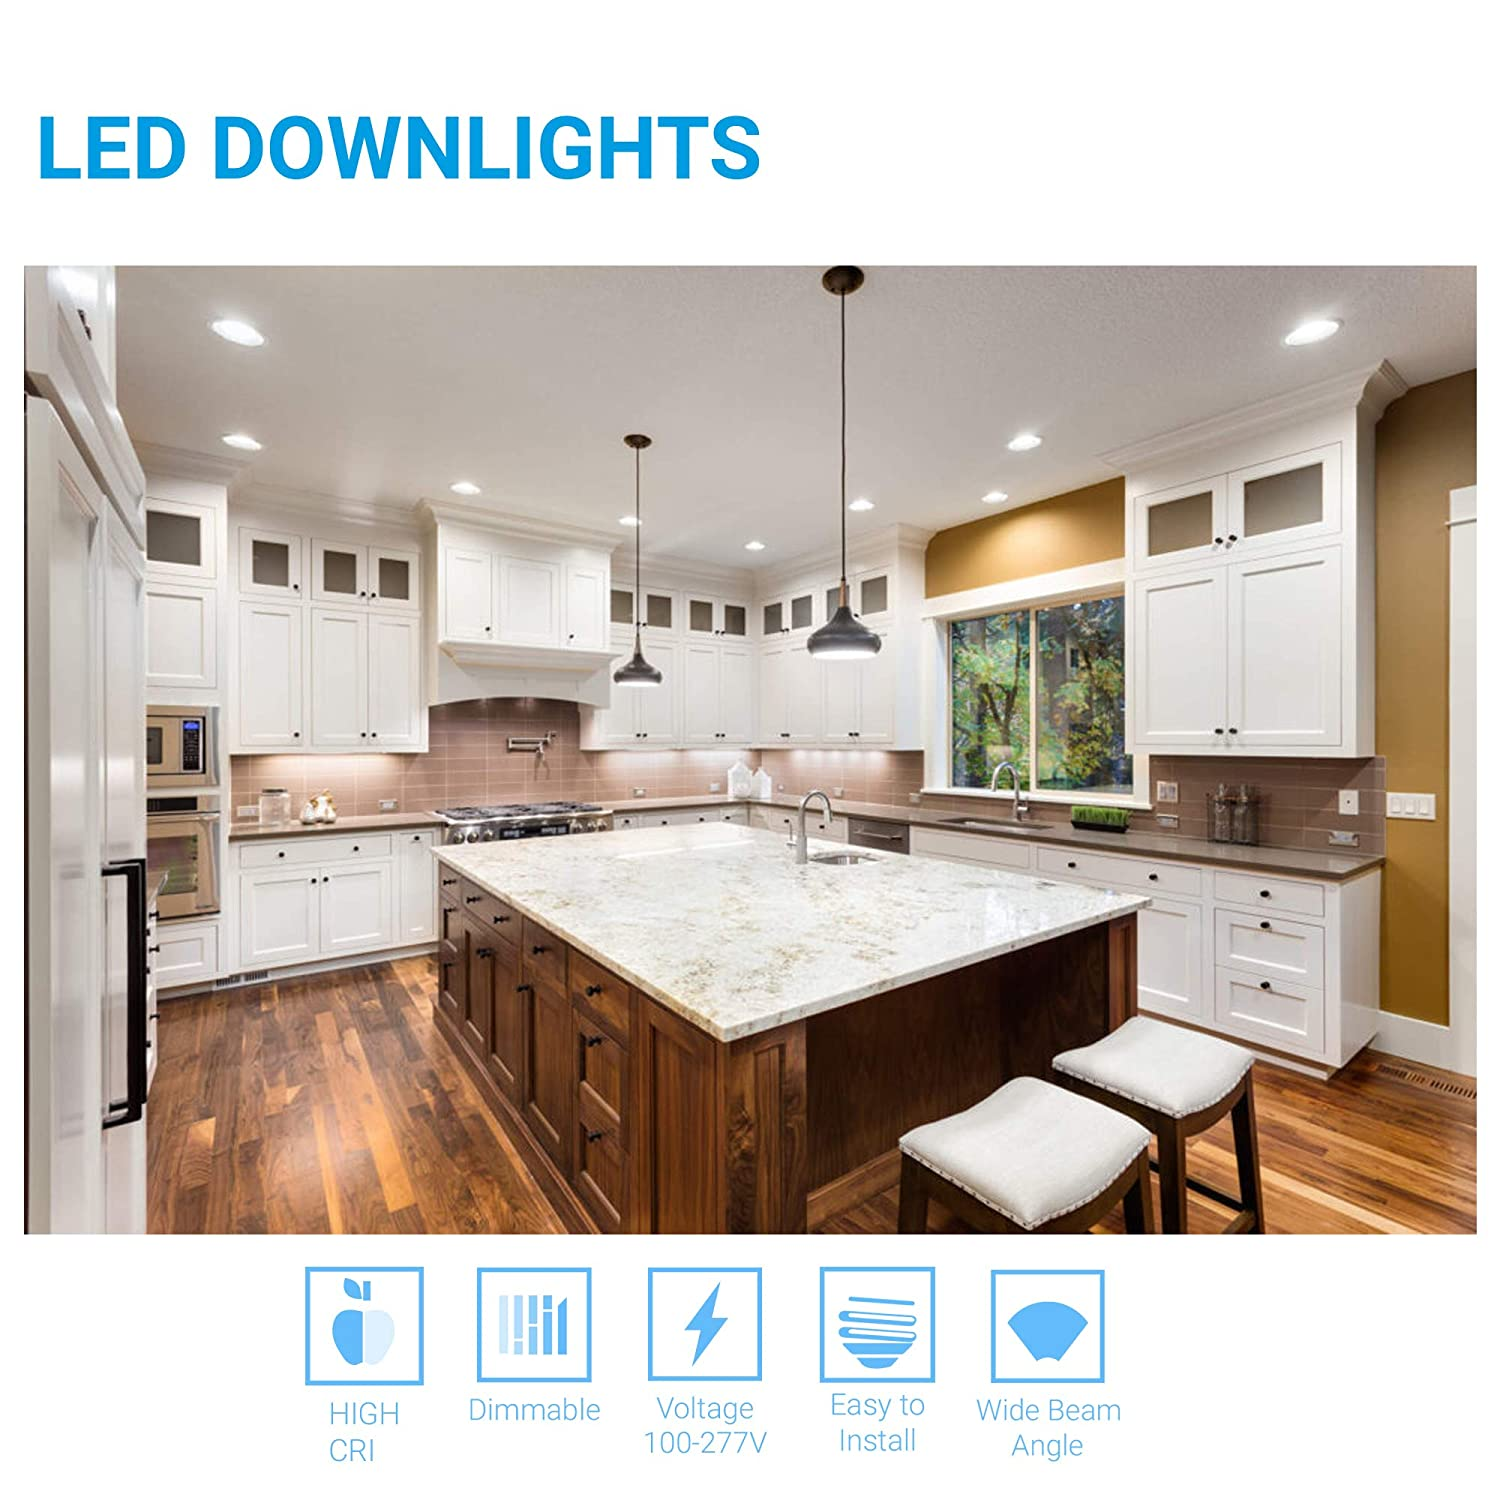 Energy Star /& FCC Approved 1-Pack 8-inch LED Downlight with Junction Box Replaces 200 Watt High CRI Slim Body to fit in sloped and Shallow 30W 4000K Cool White 2230 Lumens cETLus CRI 90+